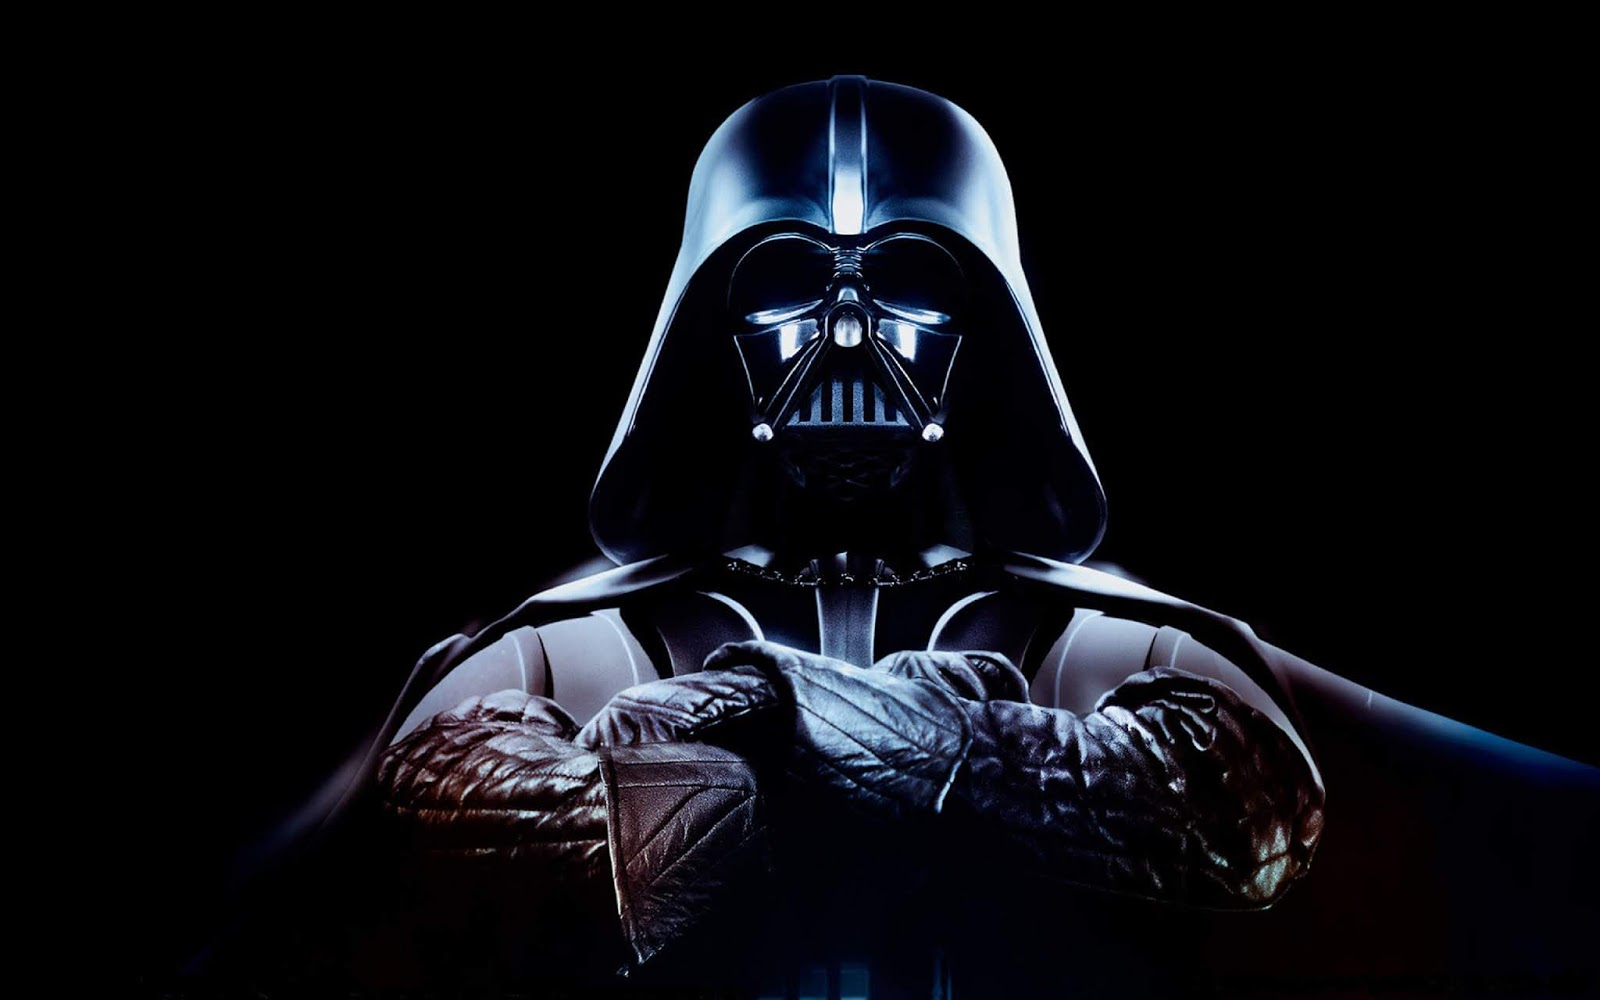 Darth Vader has been dethroned as the most famous Star Wars character